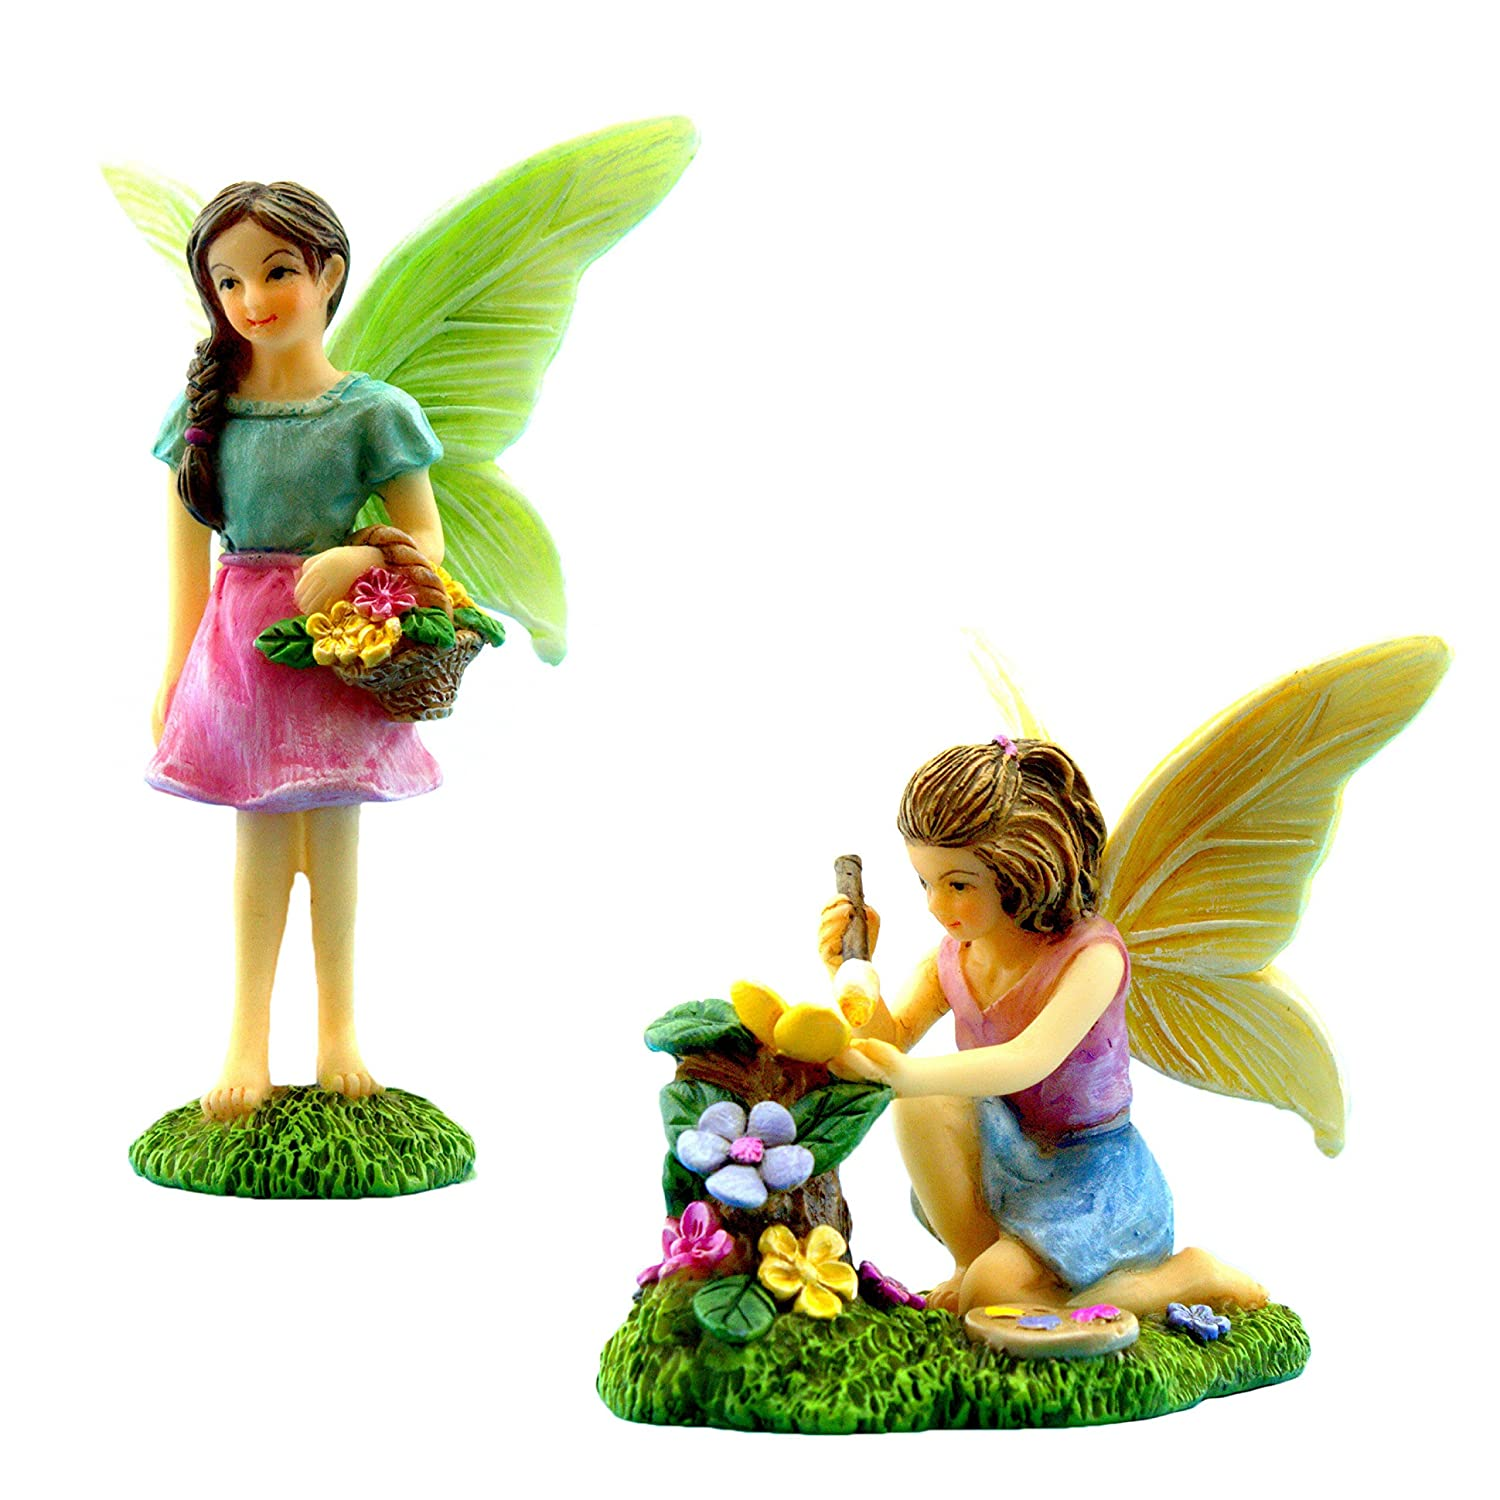 Pretmanns Fairy Garden Fairies – Miniature Accessories – 2 Garden Fairies – Fairy Garden Supplies